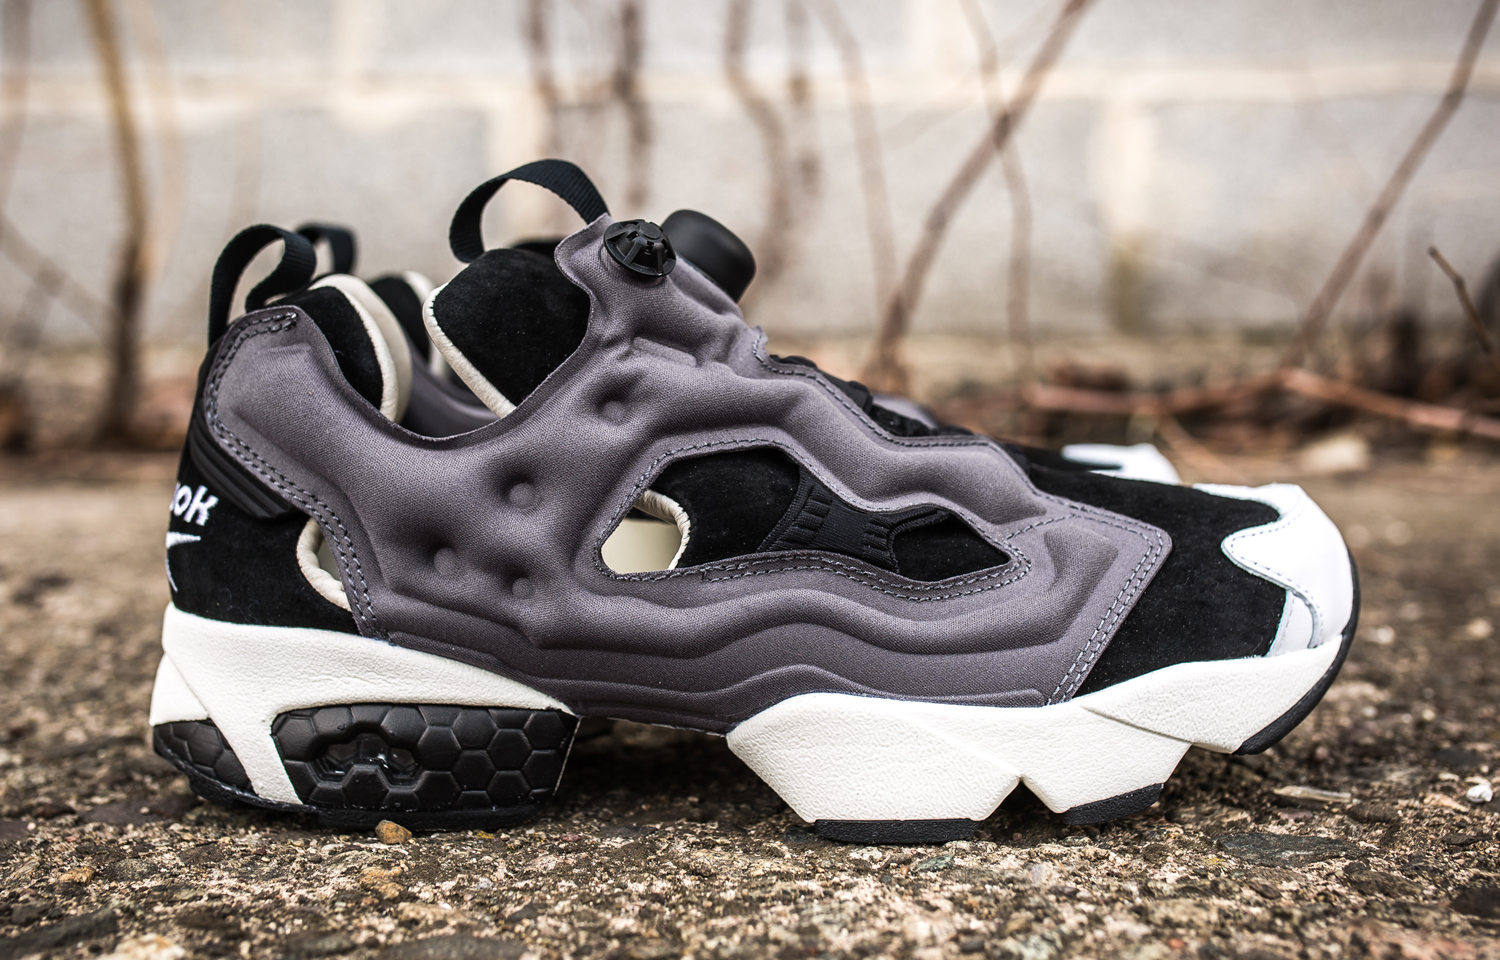 Reebok Insta Pump Fury Asia Exclusive